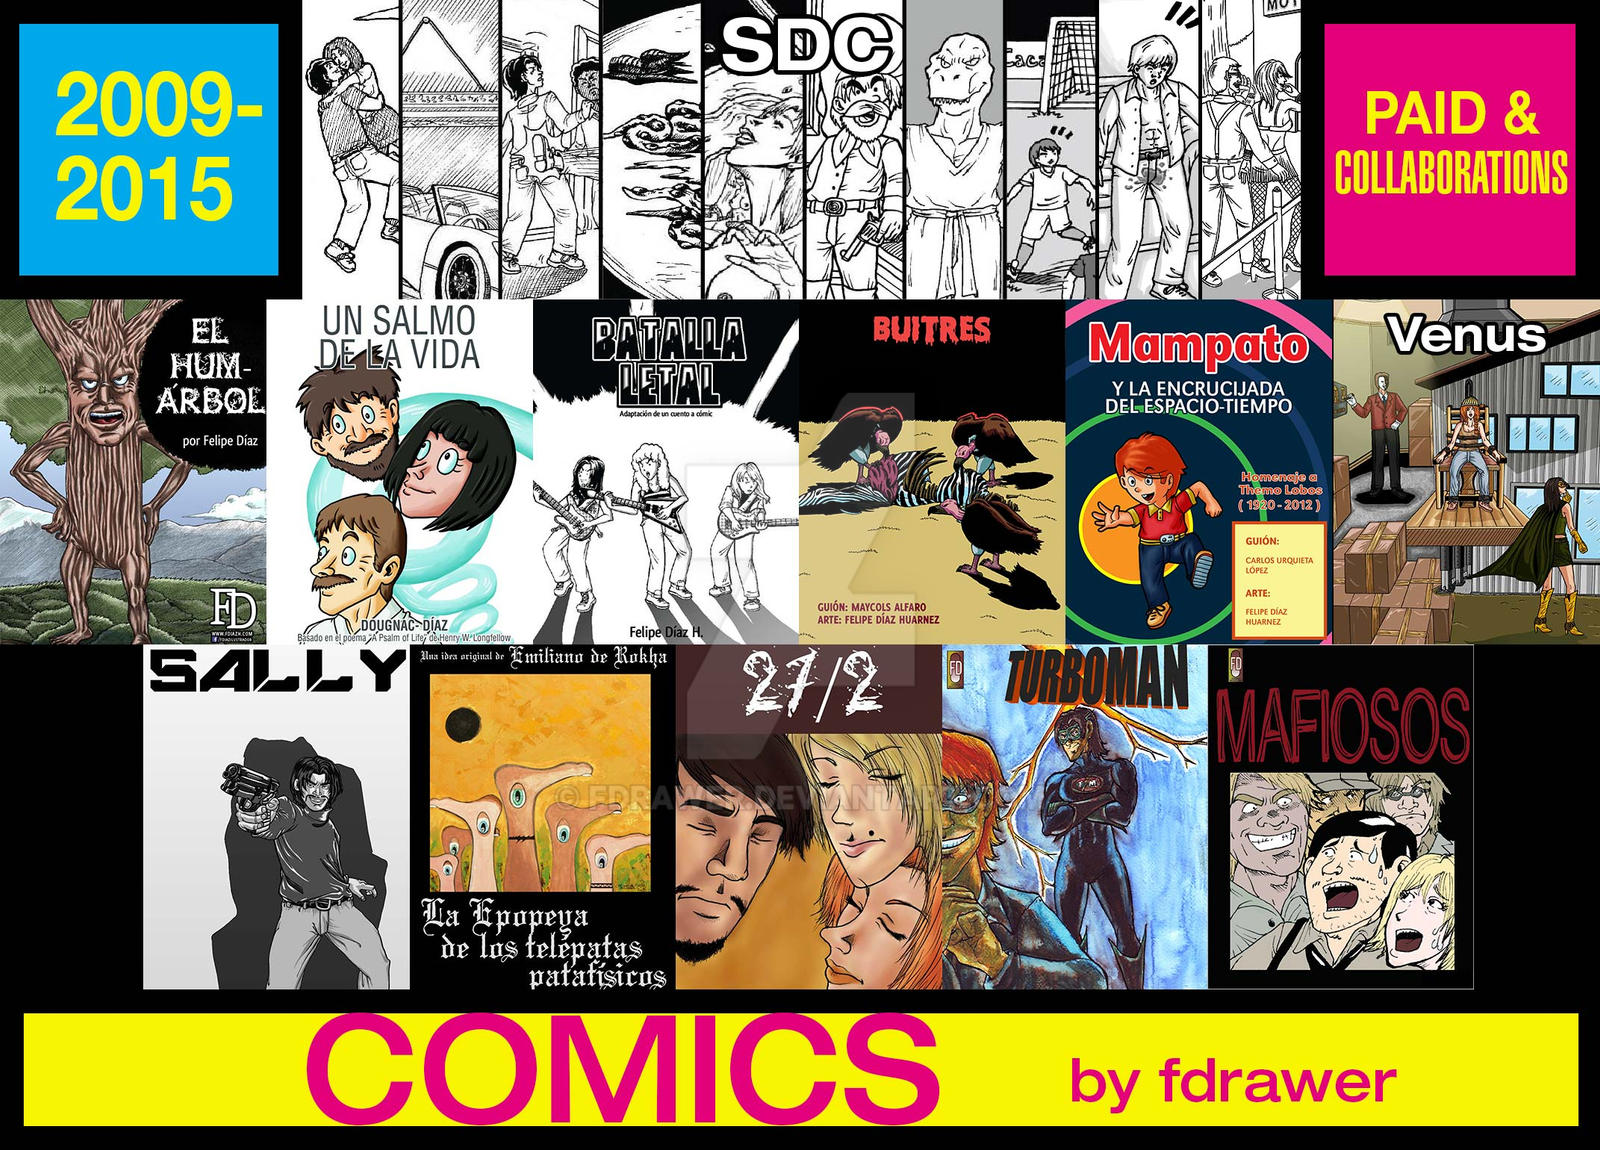 Comics 2009-2015 by fdrawer